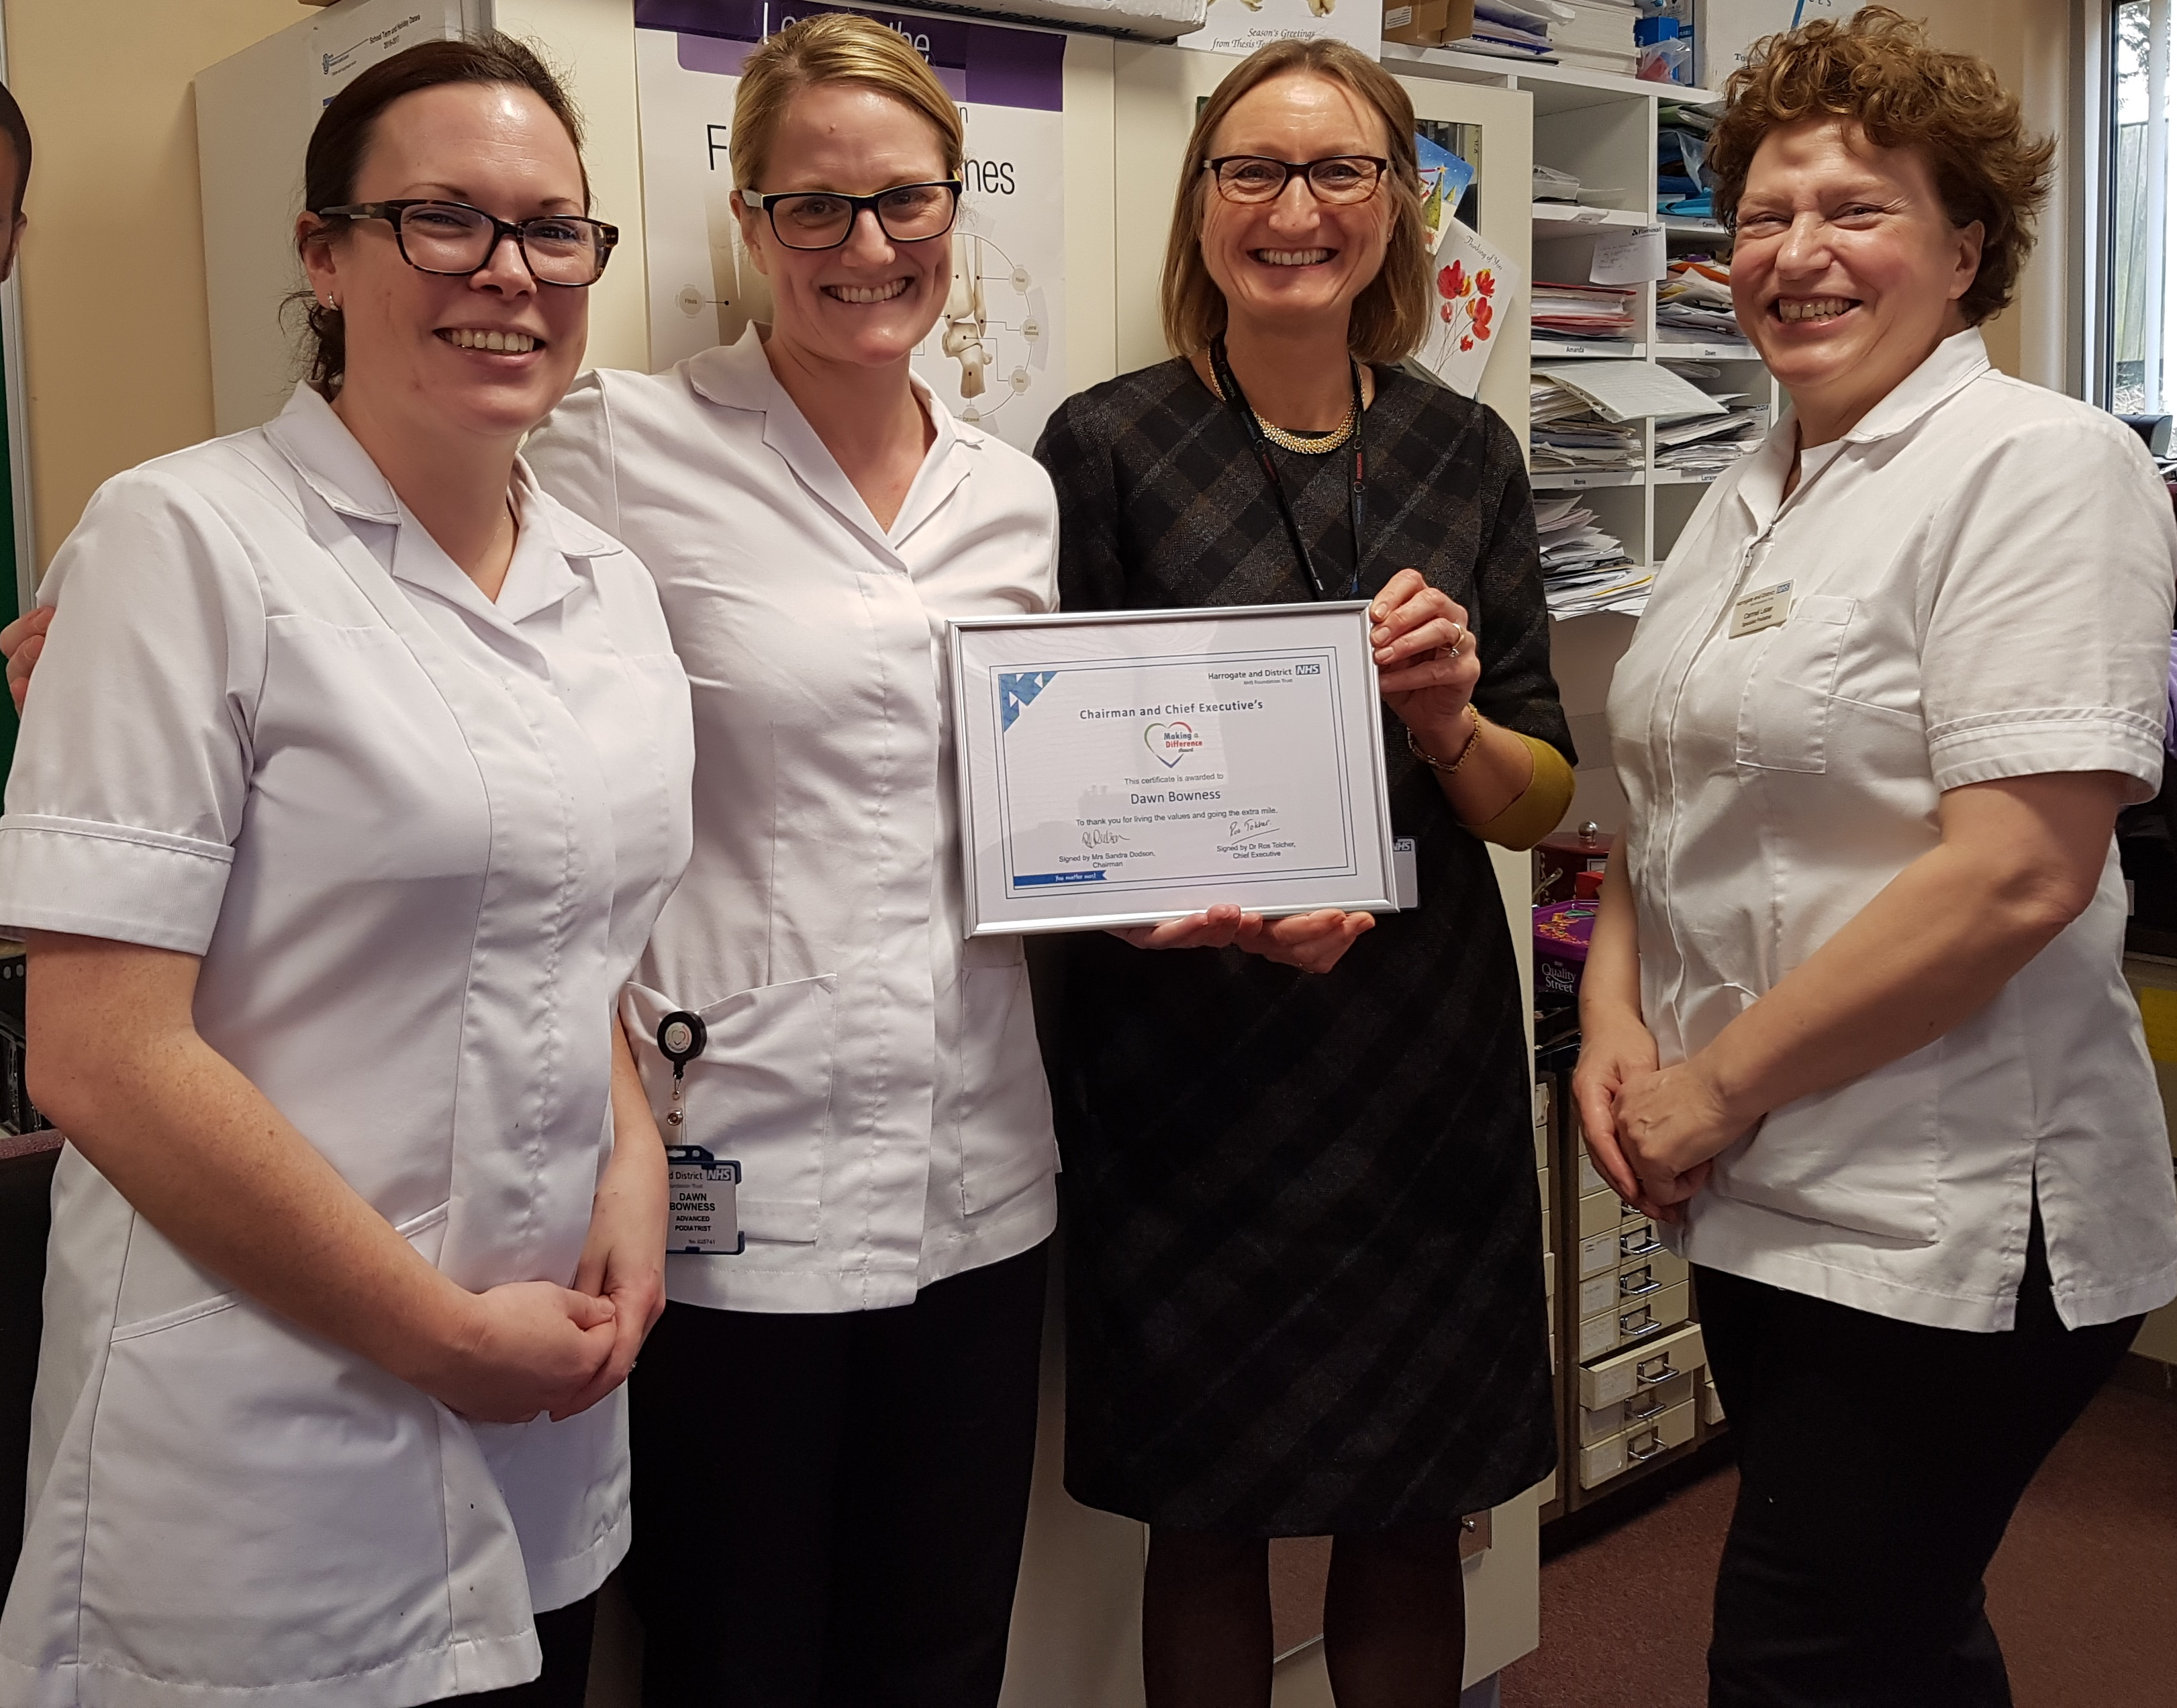 Dawn Bowness pictured with Dr Ros Tolcher, Chief Executive and Podiatry colleagues, Emma Noe and Carmel Lister